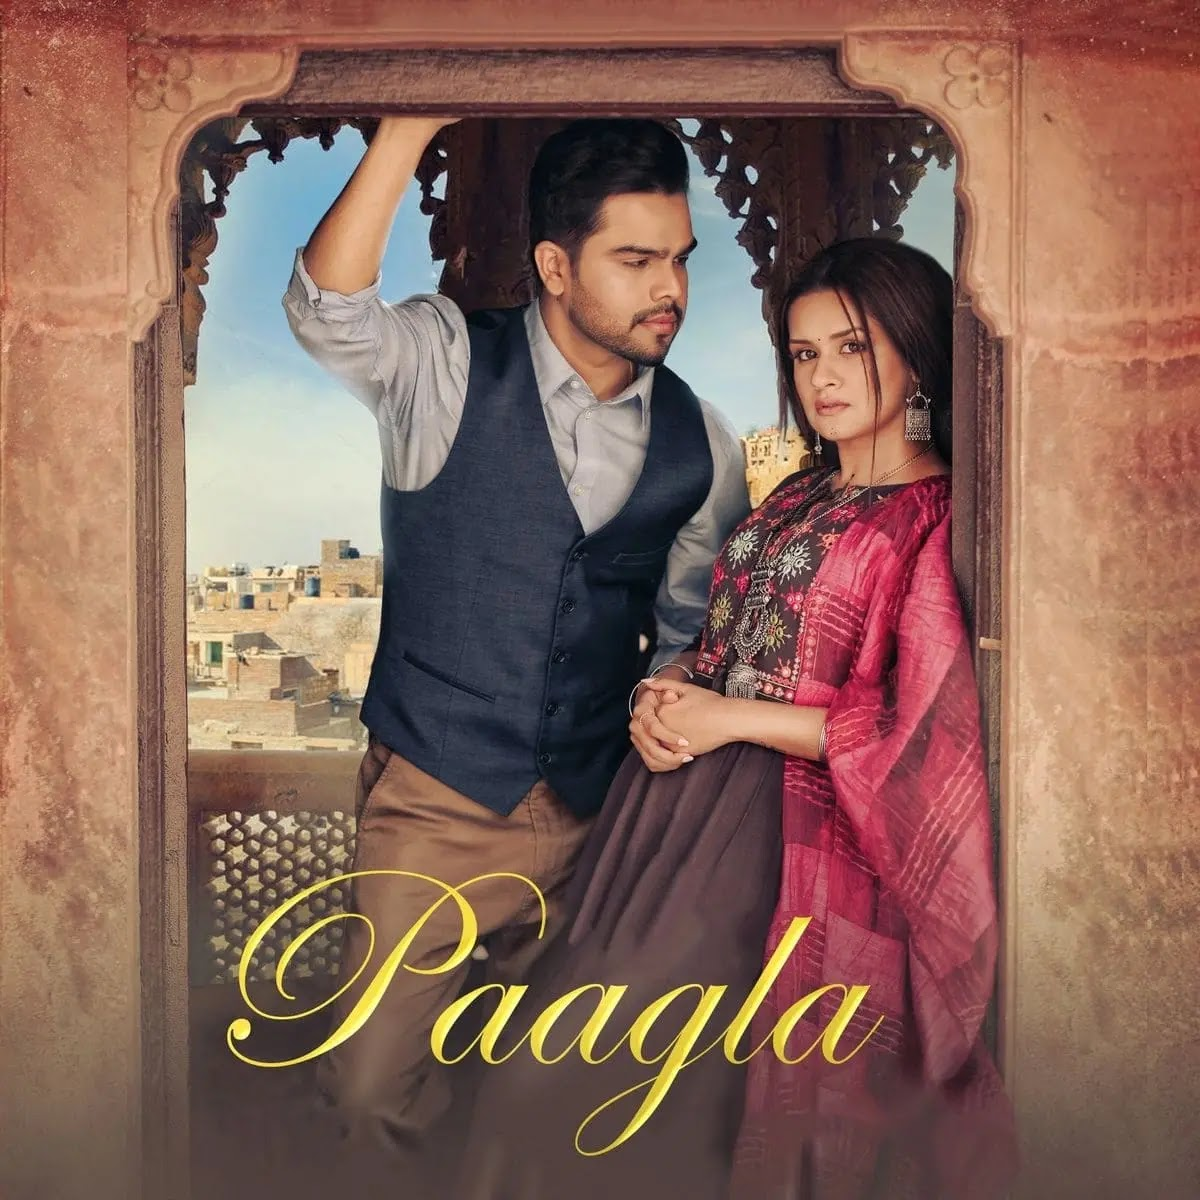 Paagla Mp3 Song Download 320kbps Free